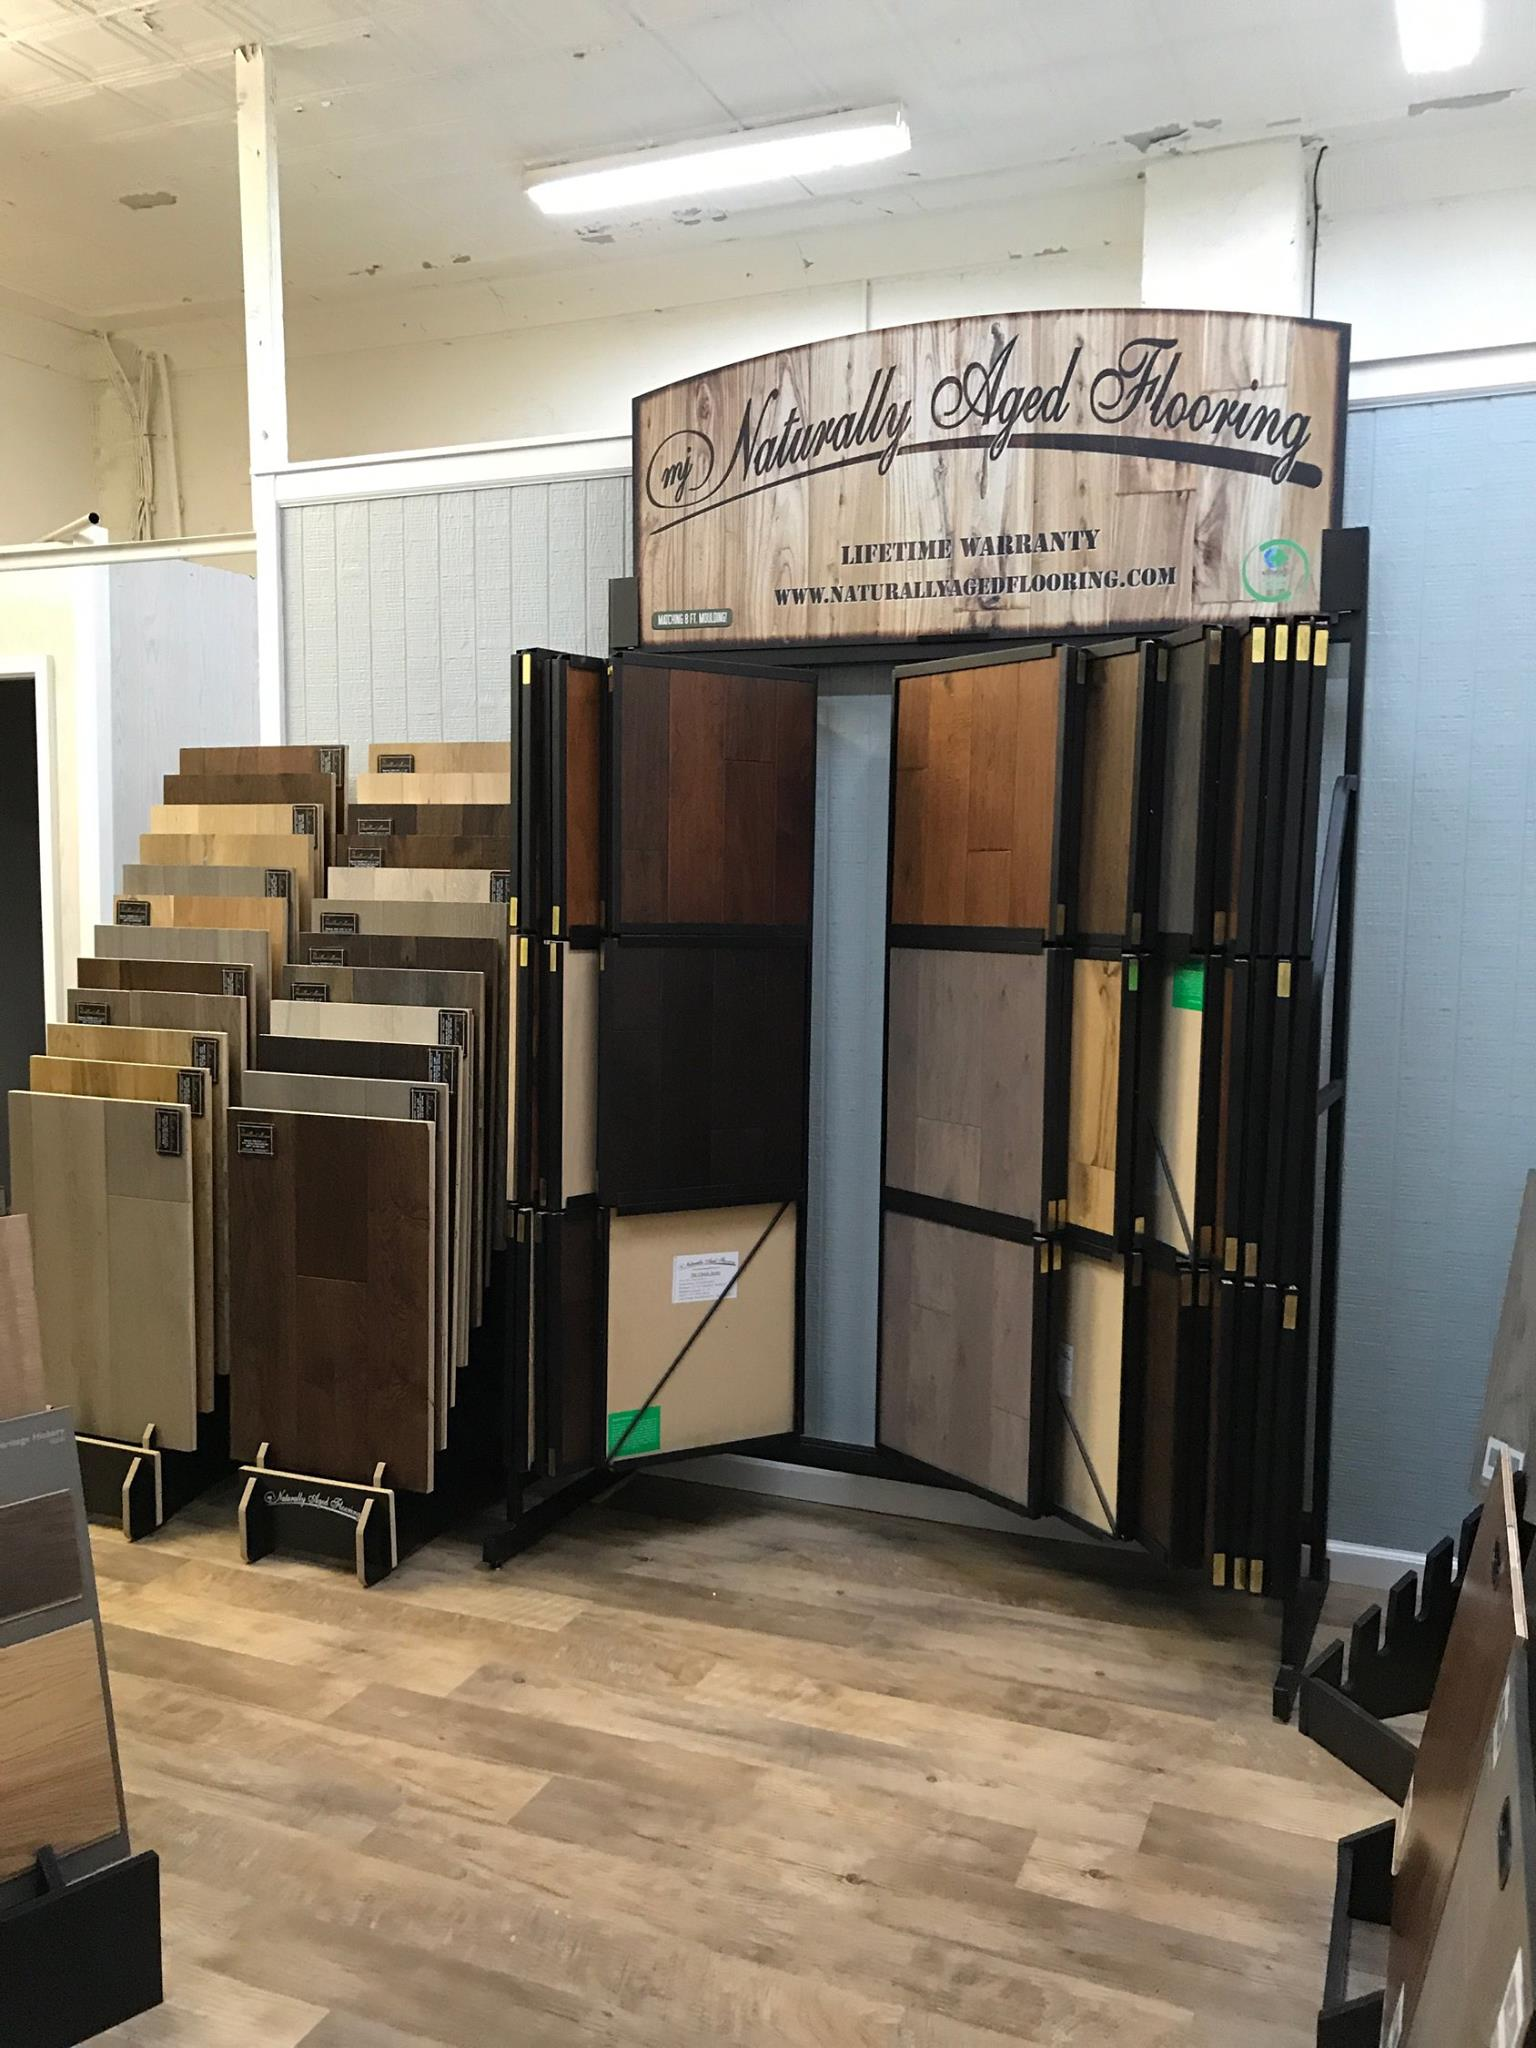 Naturally Aged Flooring available at Greentown Flooring